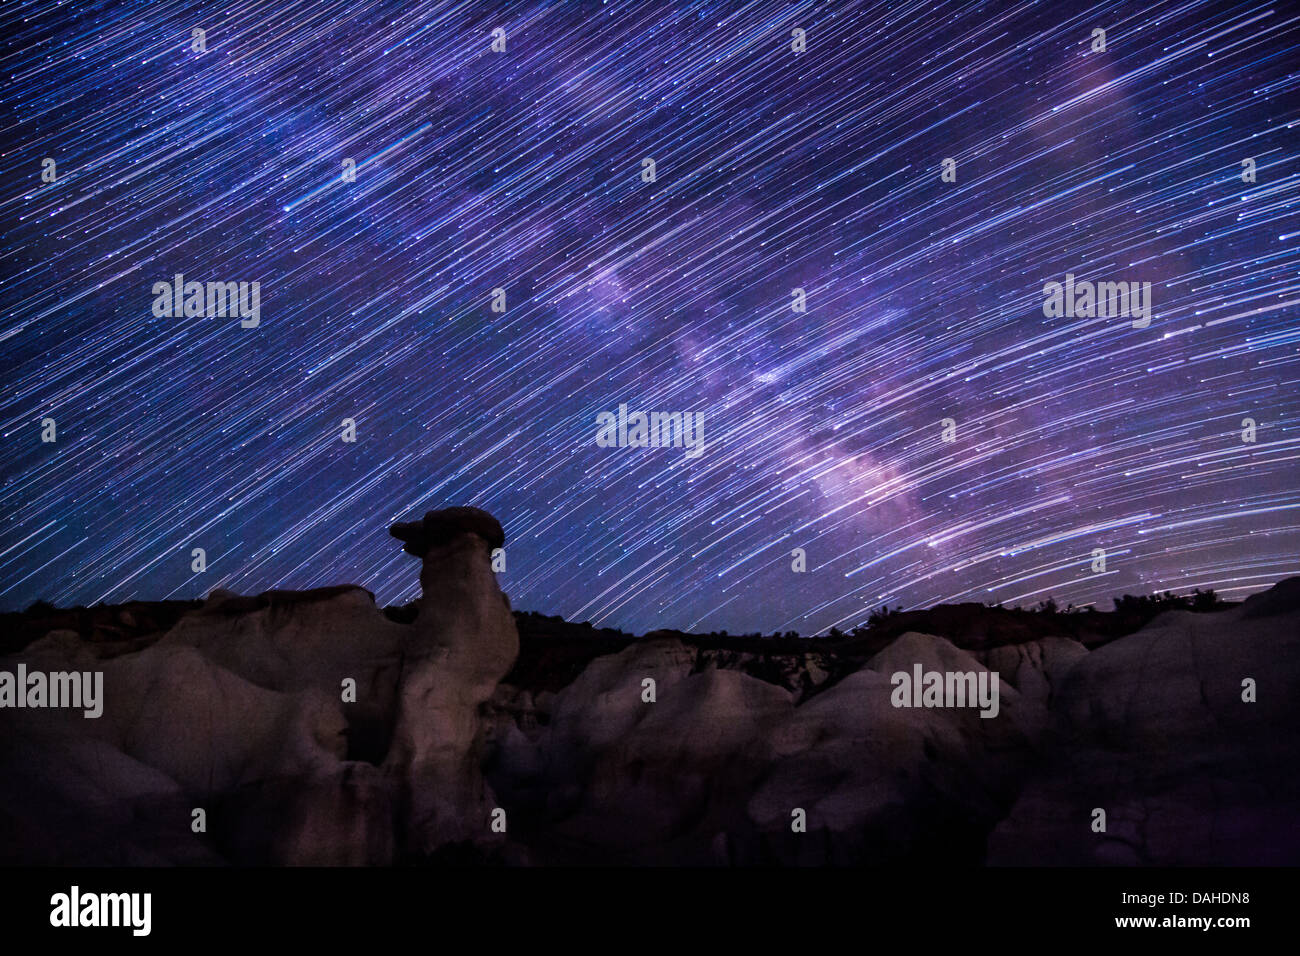 Star trails over unique rock formations in Colorado against the backdrop of a purple and pink Milky Way Galaxy Stock Photo